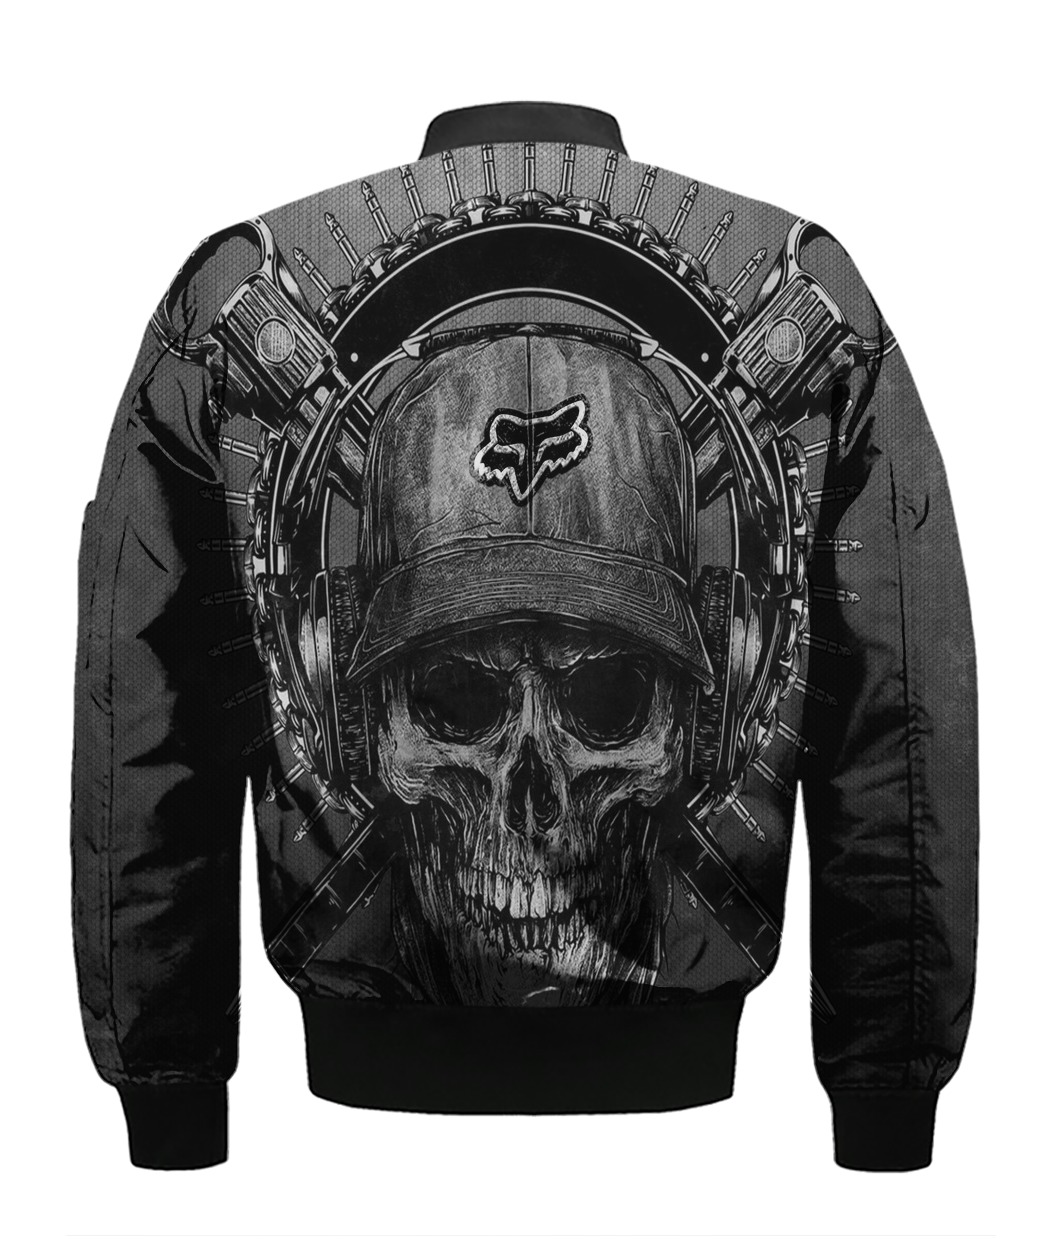 Terror noise division fox racing all over print bomber - back